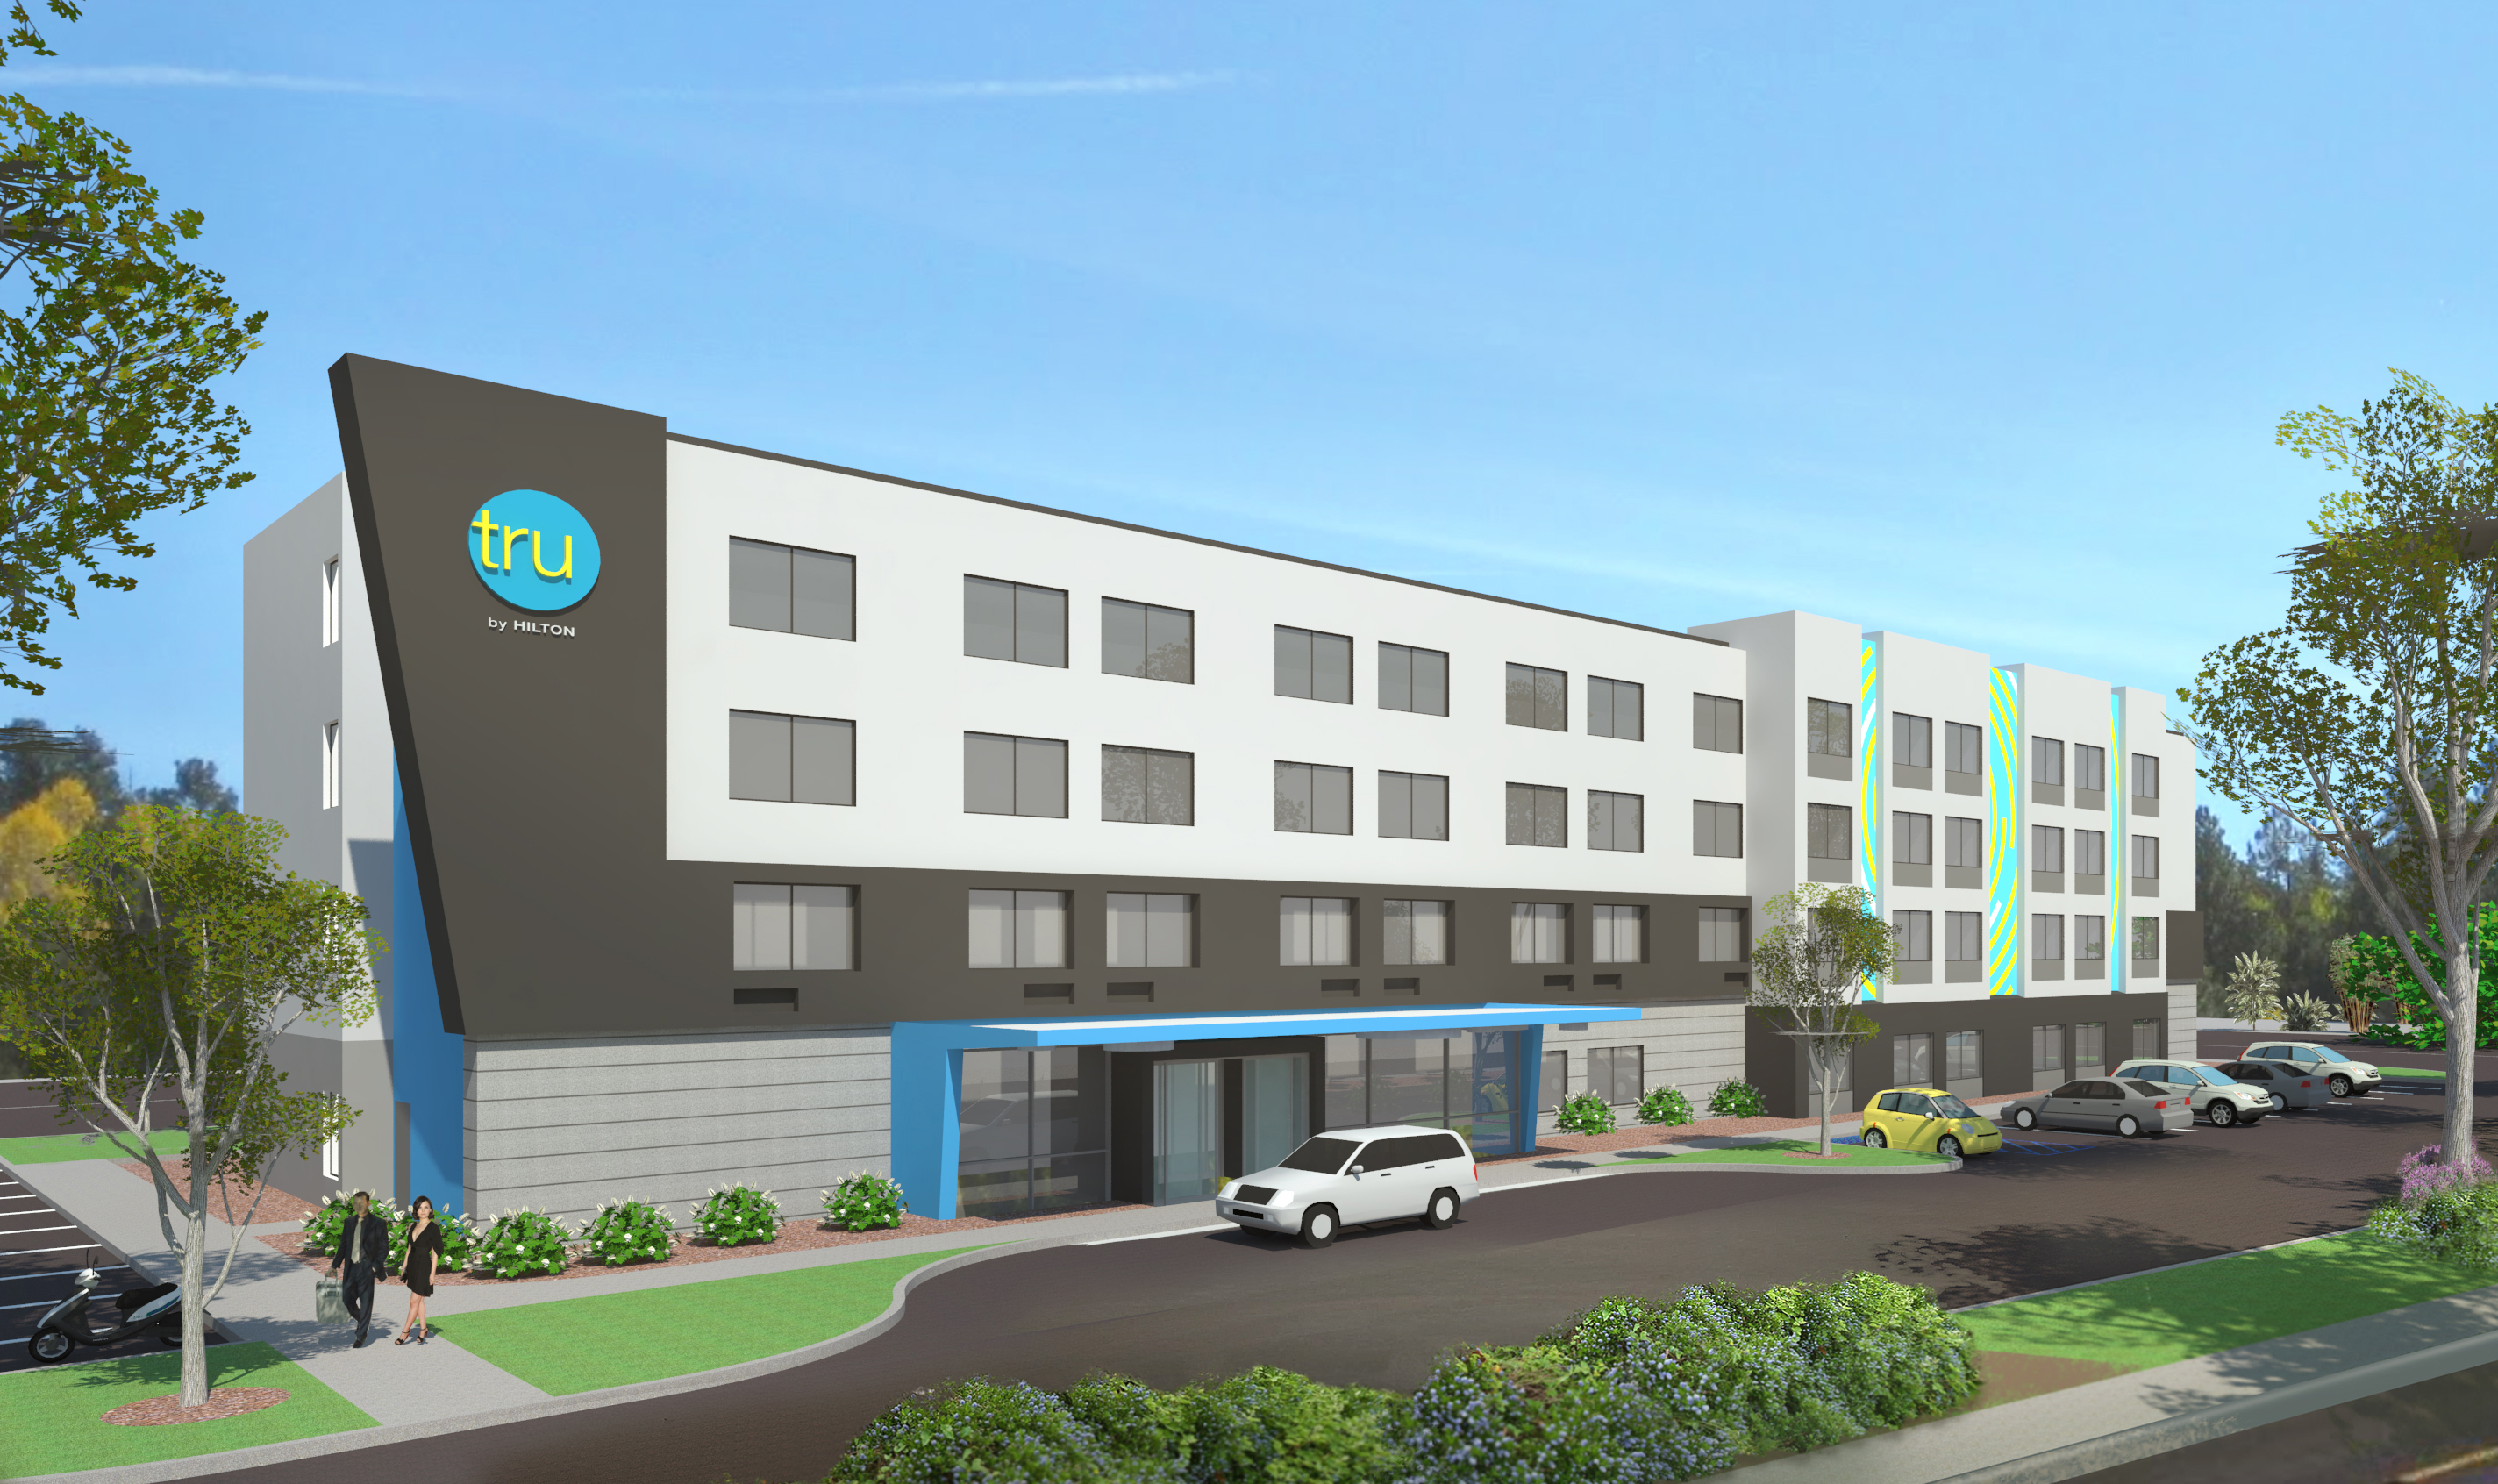 Hotel Exterior Design How Hilton Brought Its Tru Brand To Life Hotel Management